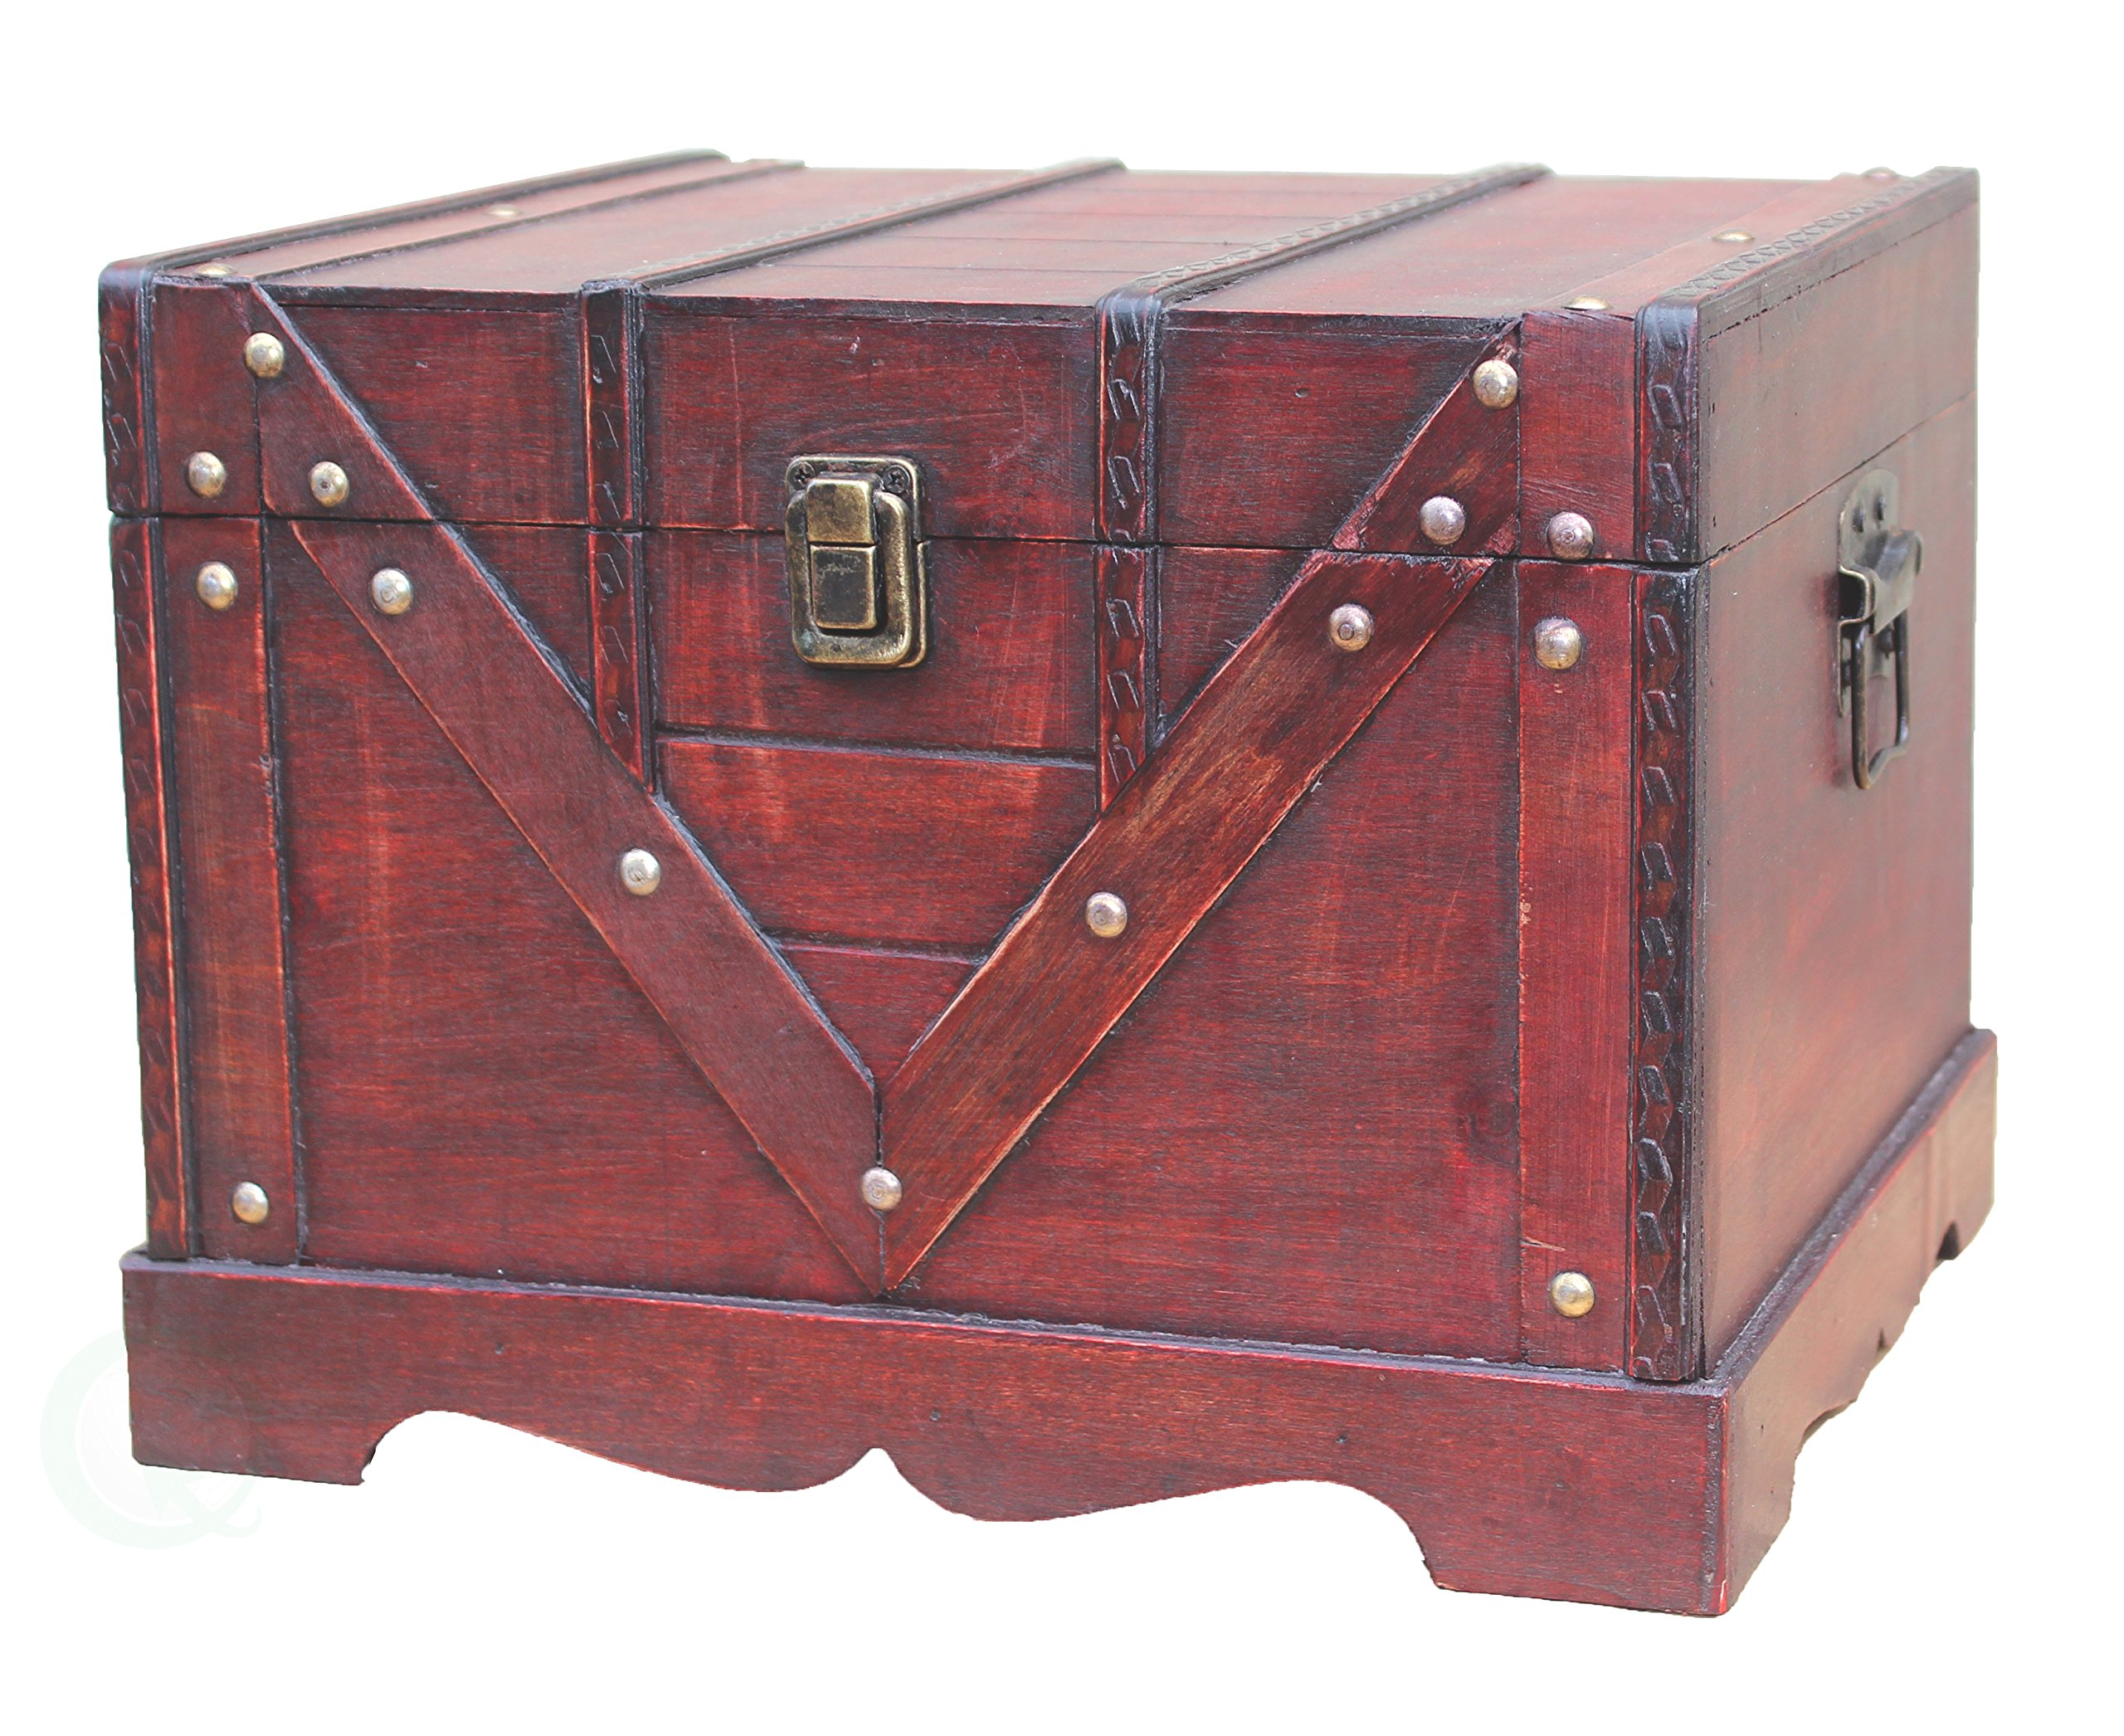 Vintiquewise AX-AY-ABHI-42733 QI003027.L Wooden Box, Old Style Treasure Chest